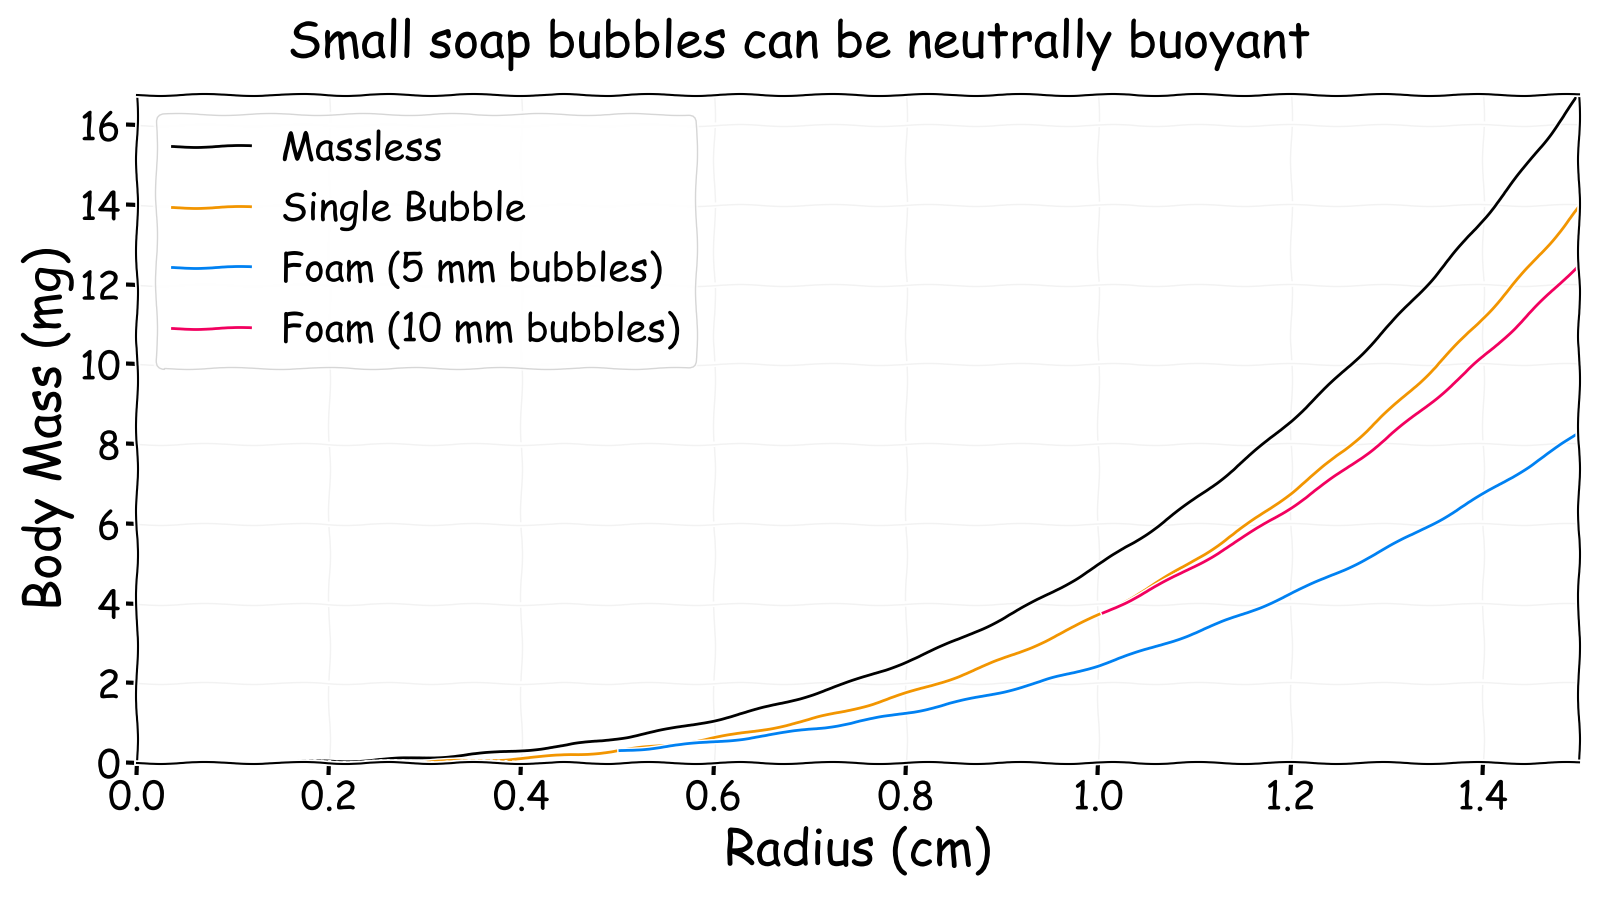 Neutrally buoyant body mass versus radius for different soap bubbles